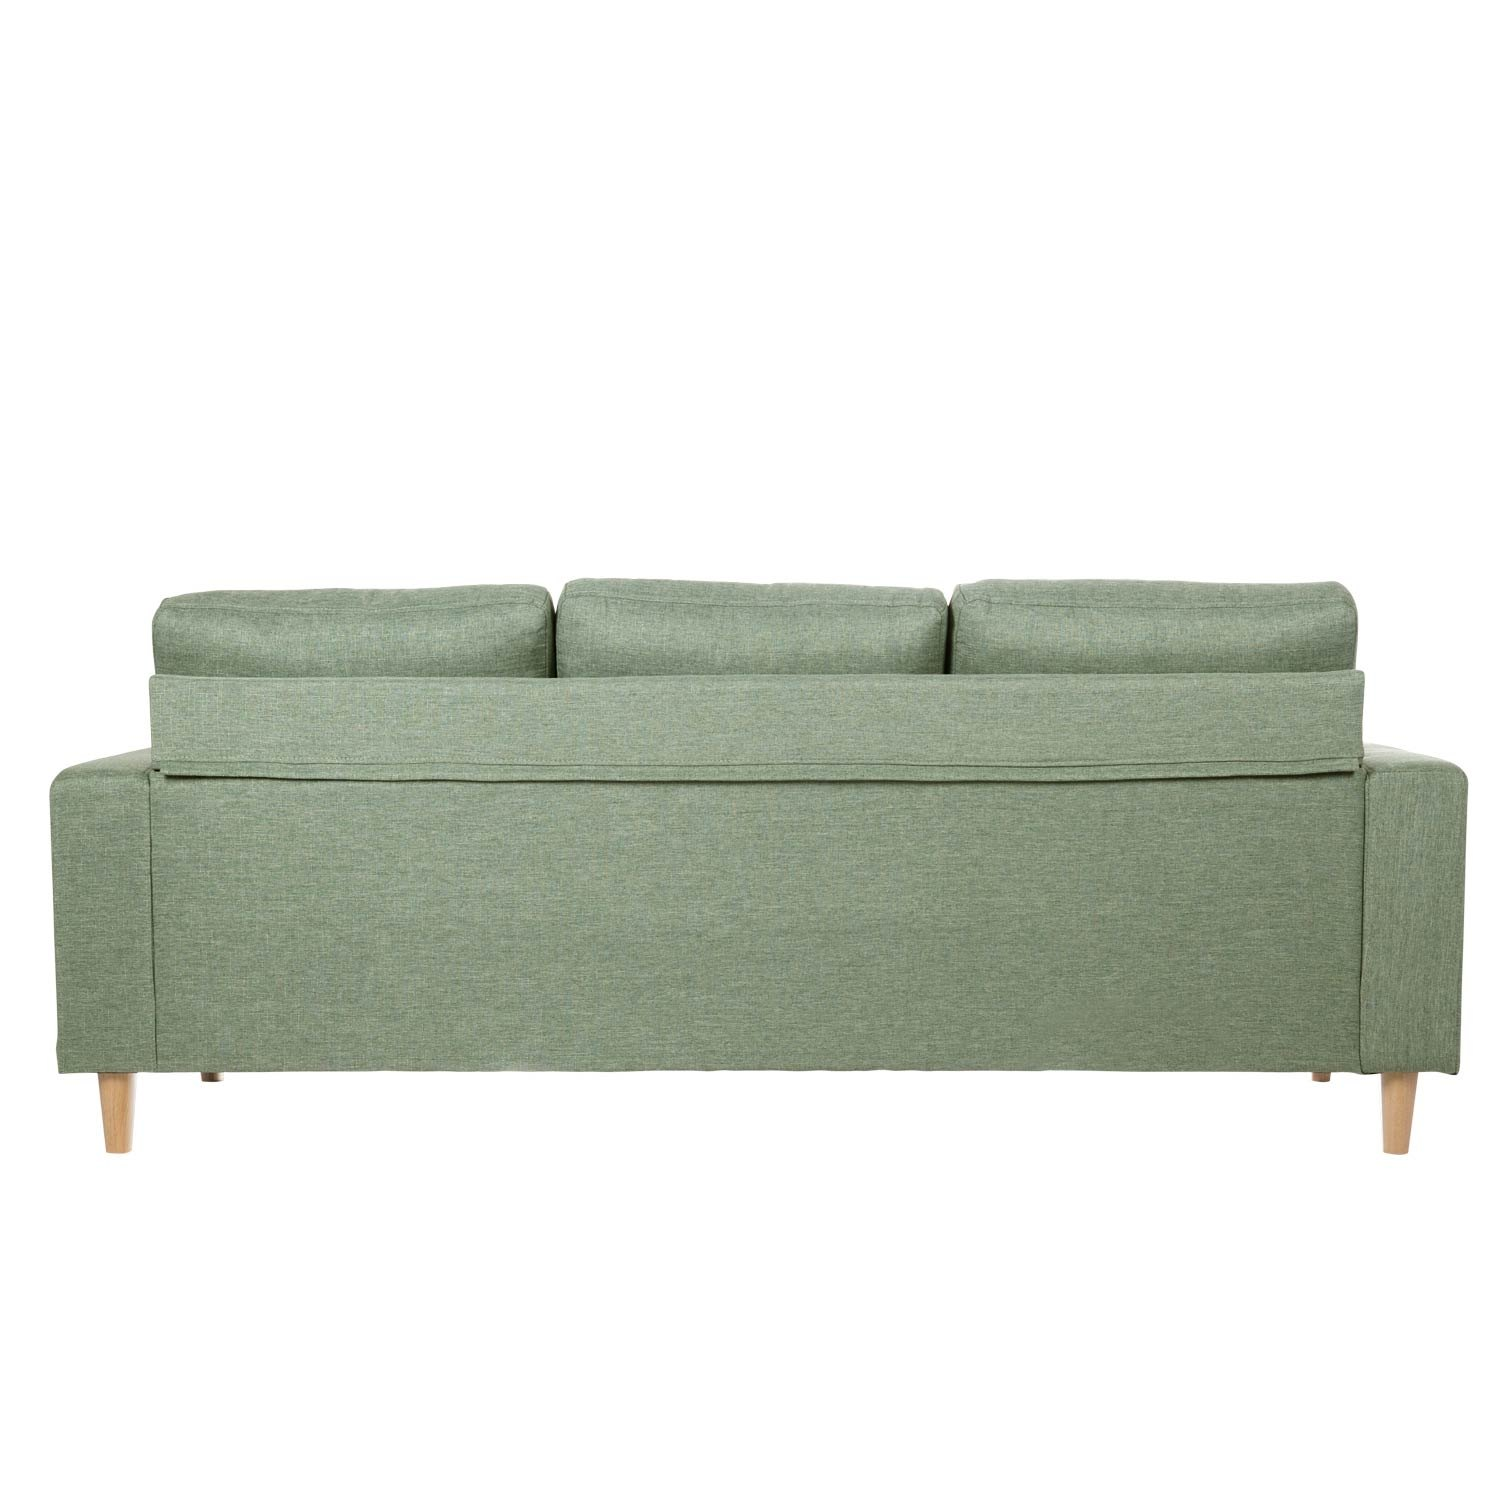 Sof chaise longue domay for Ofertas chaise longue online